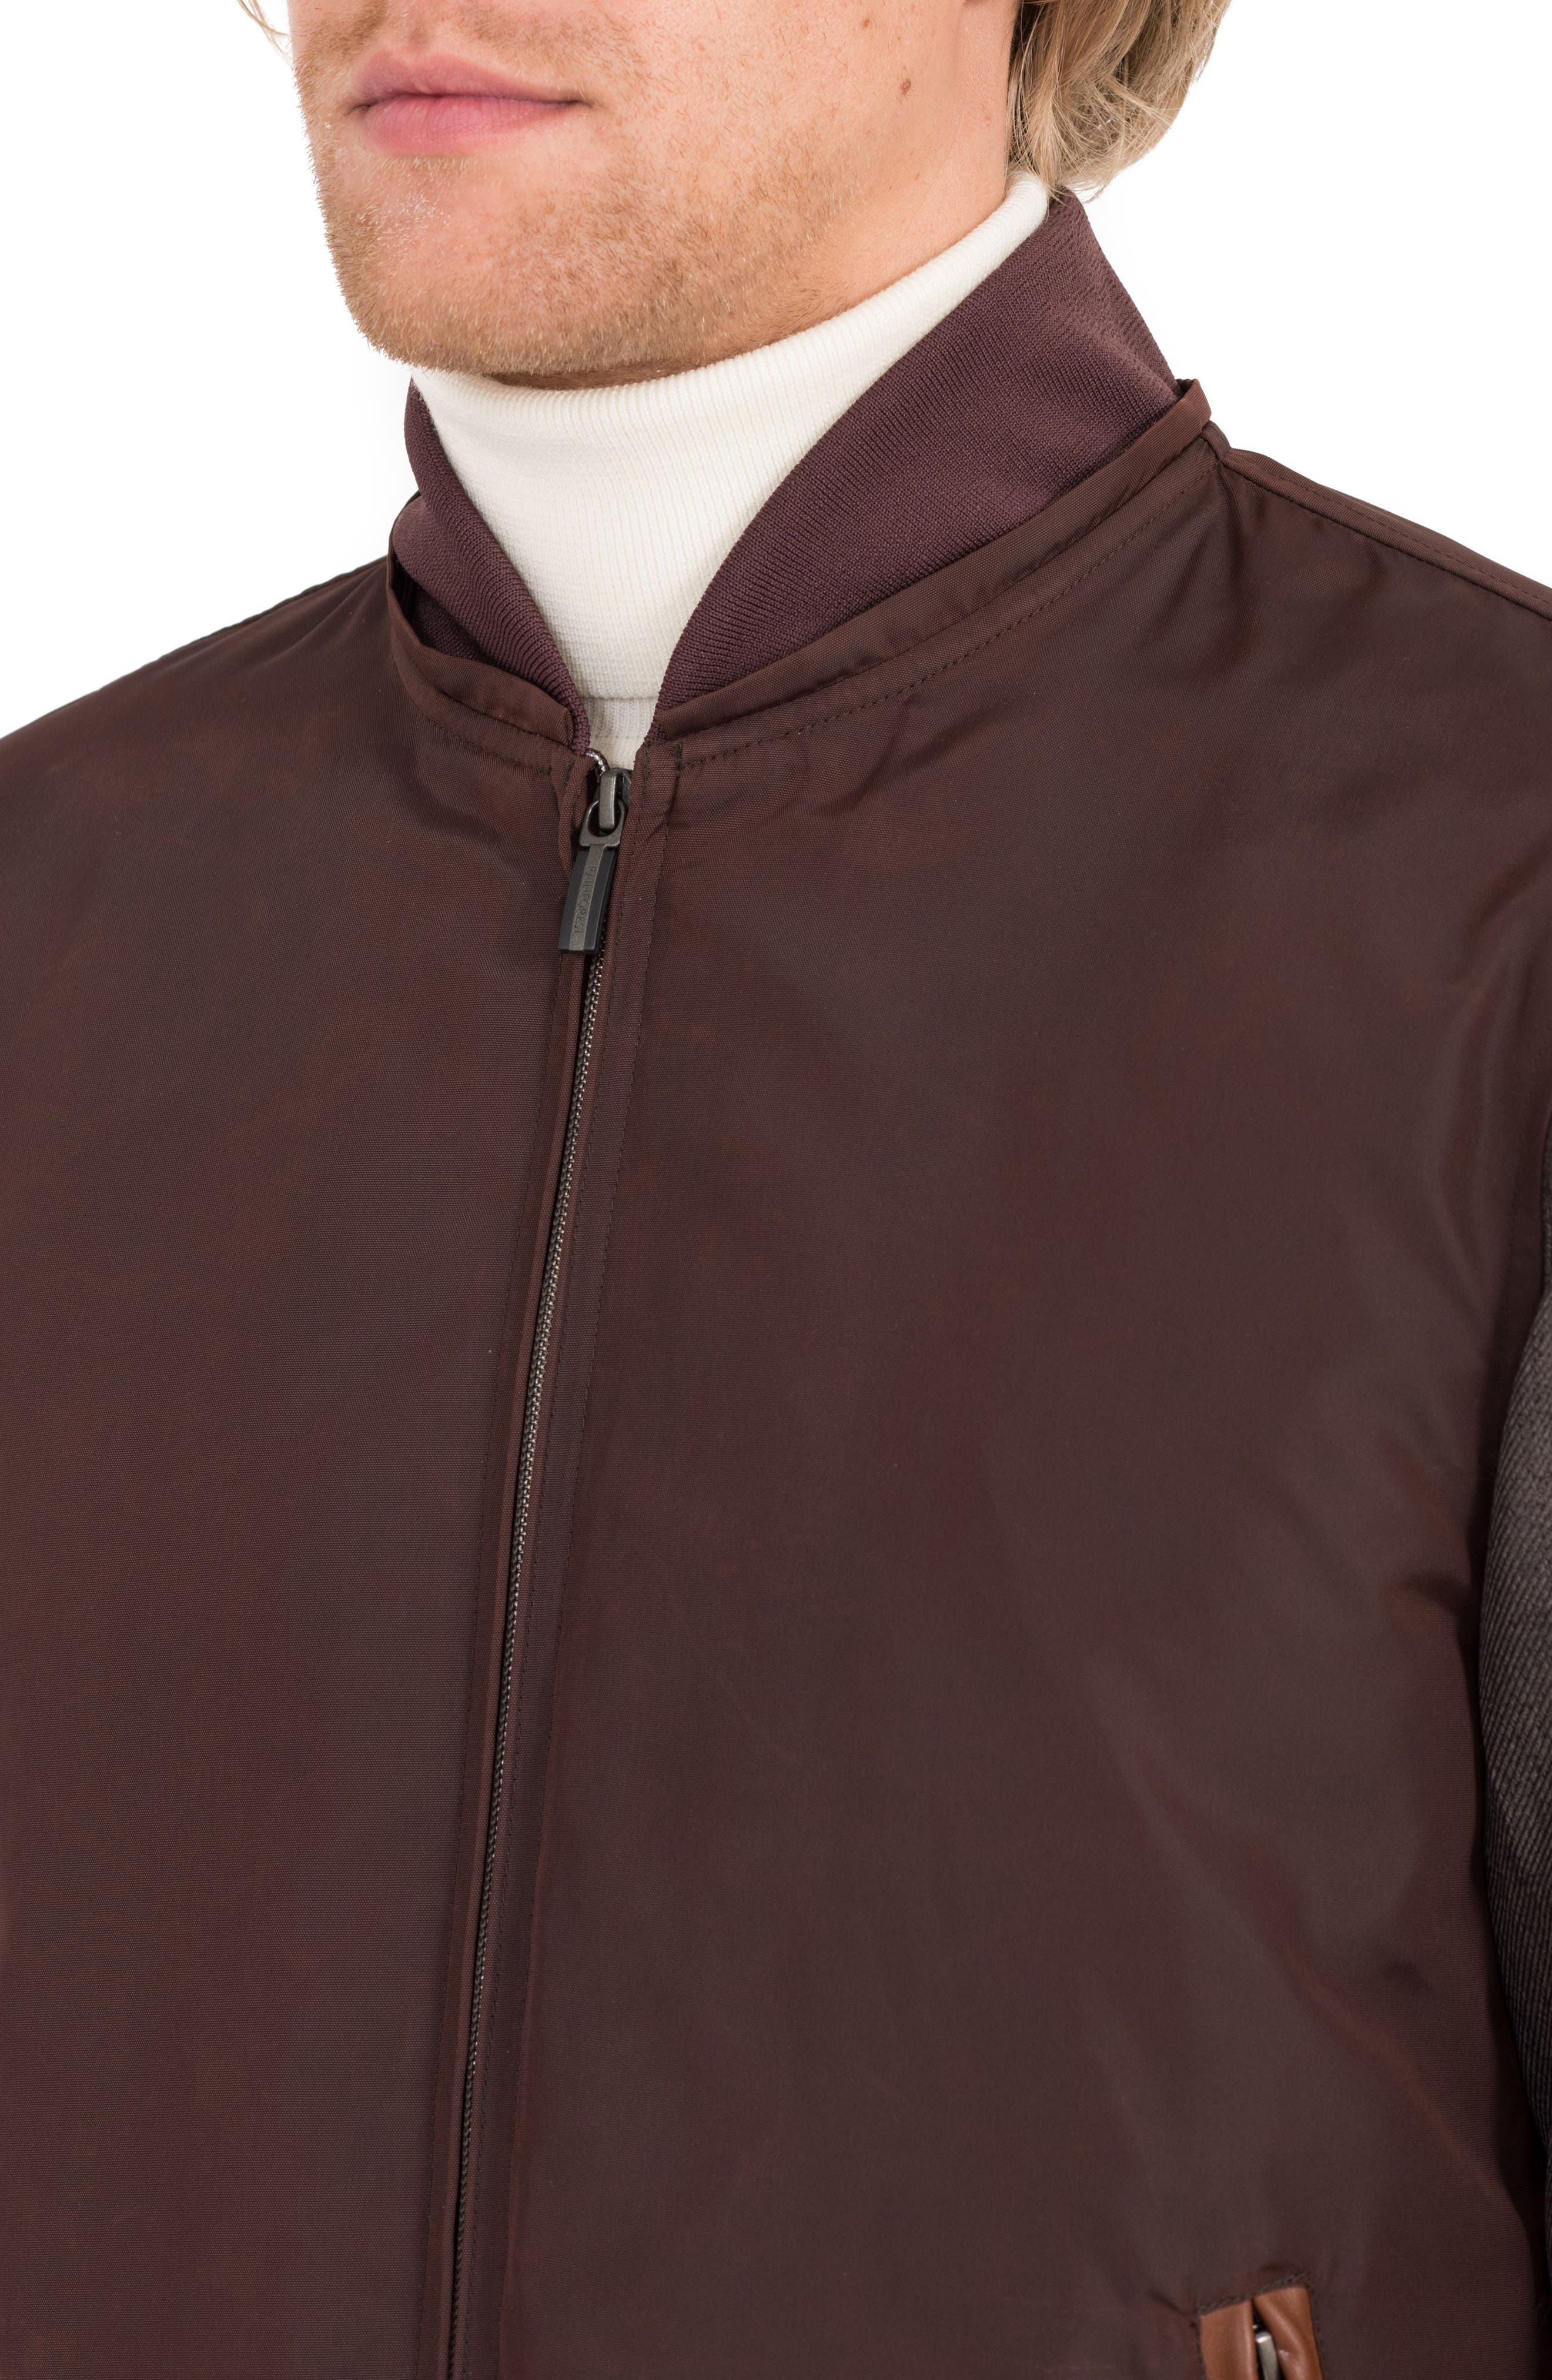 Waxed Nylon Jacket with Faux Shearling Collar,                             Alternate thumbnail 5, color,                             930